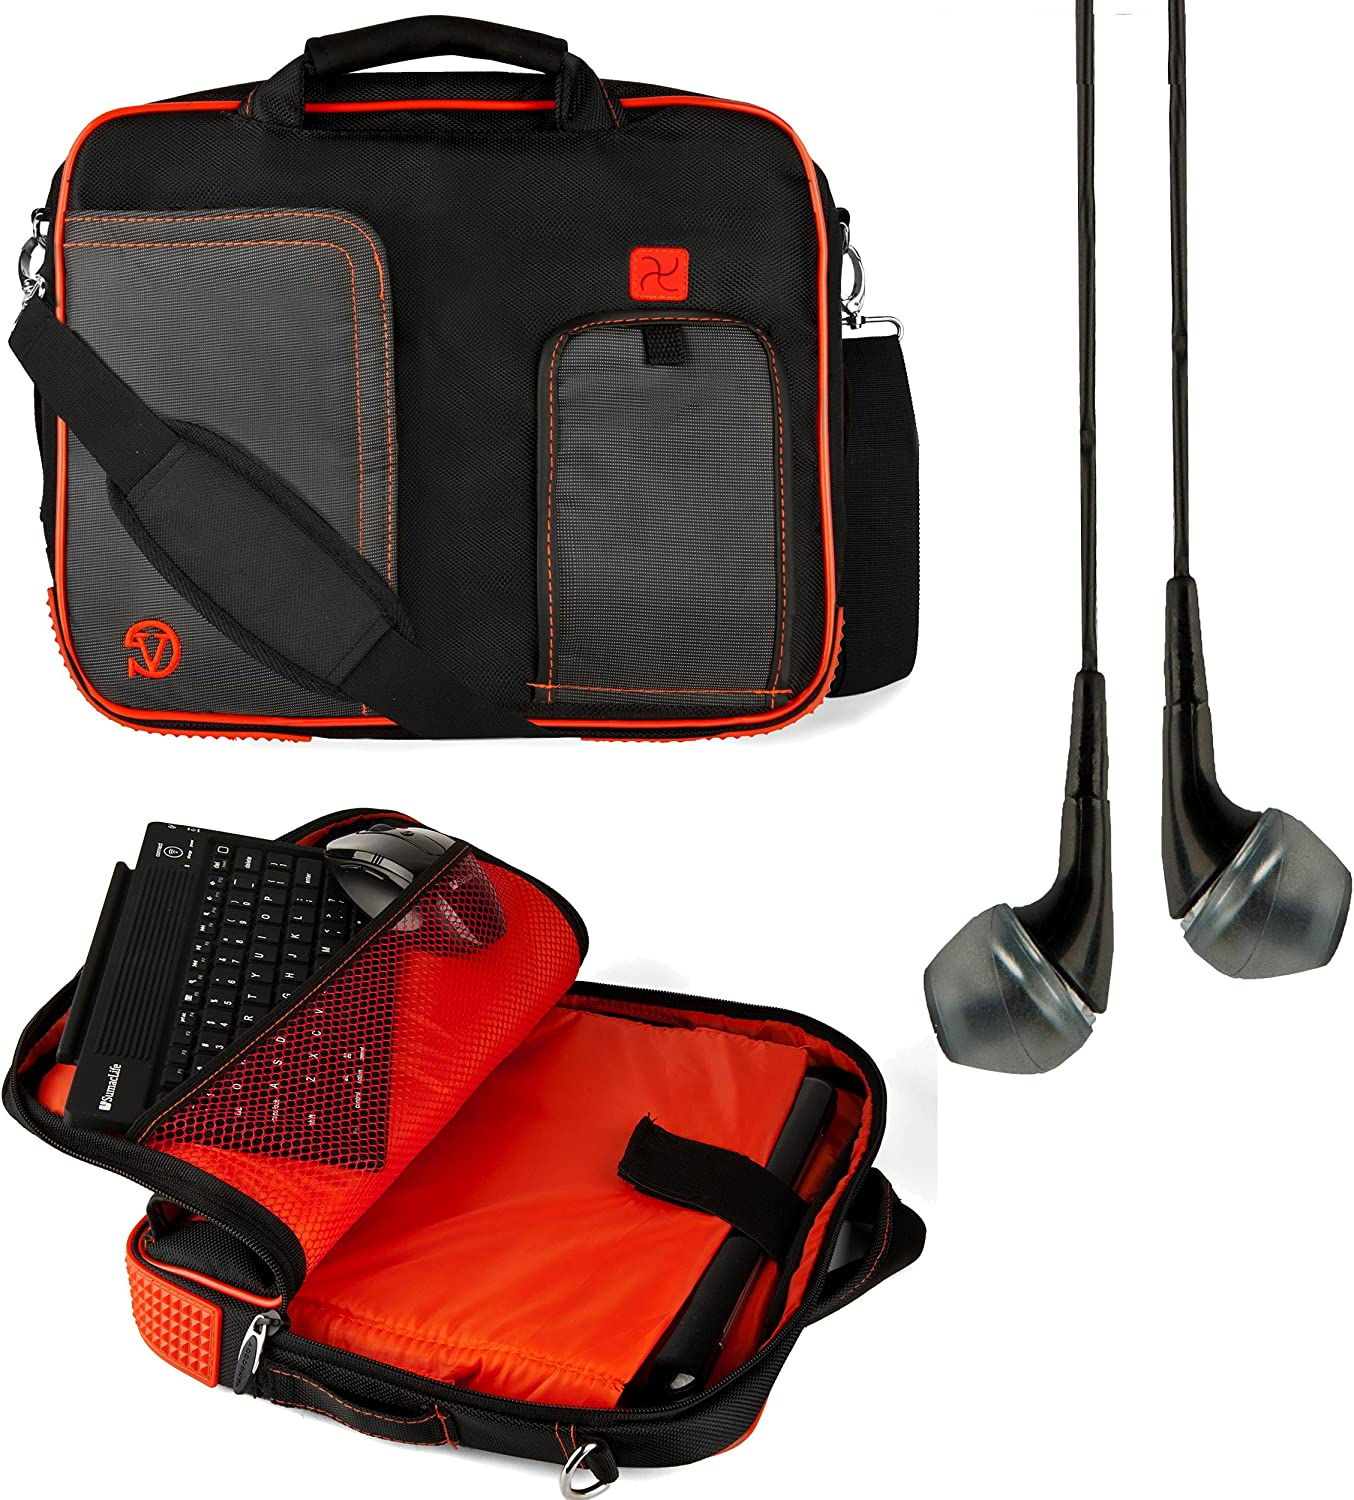 for Microsoft Surface RT 2 Flaming Red Pro 2 10 inch Tablets and Black Handsfree Headphones VG Pindar Edition Messenger Bag Carrying Case